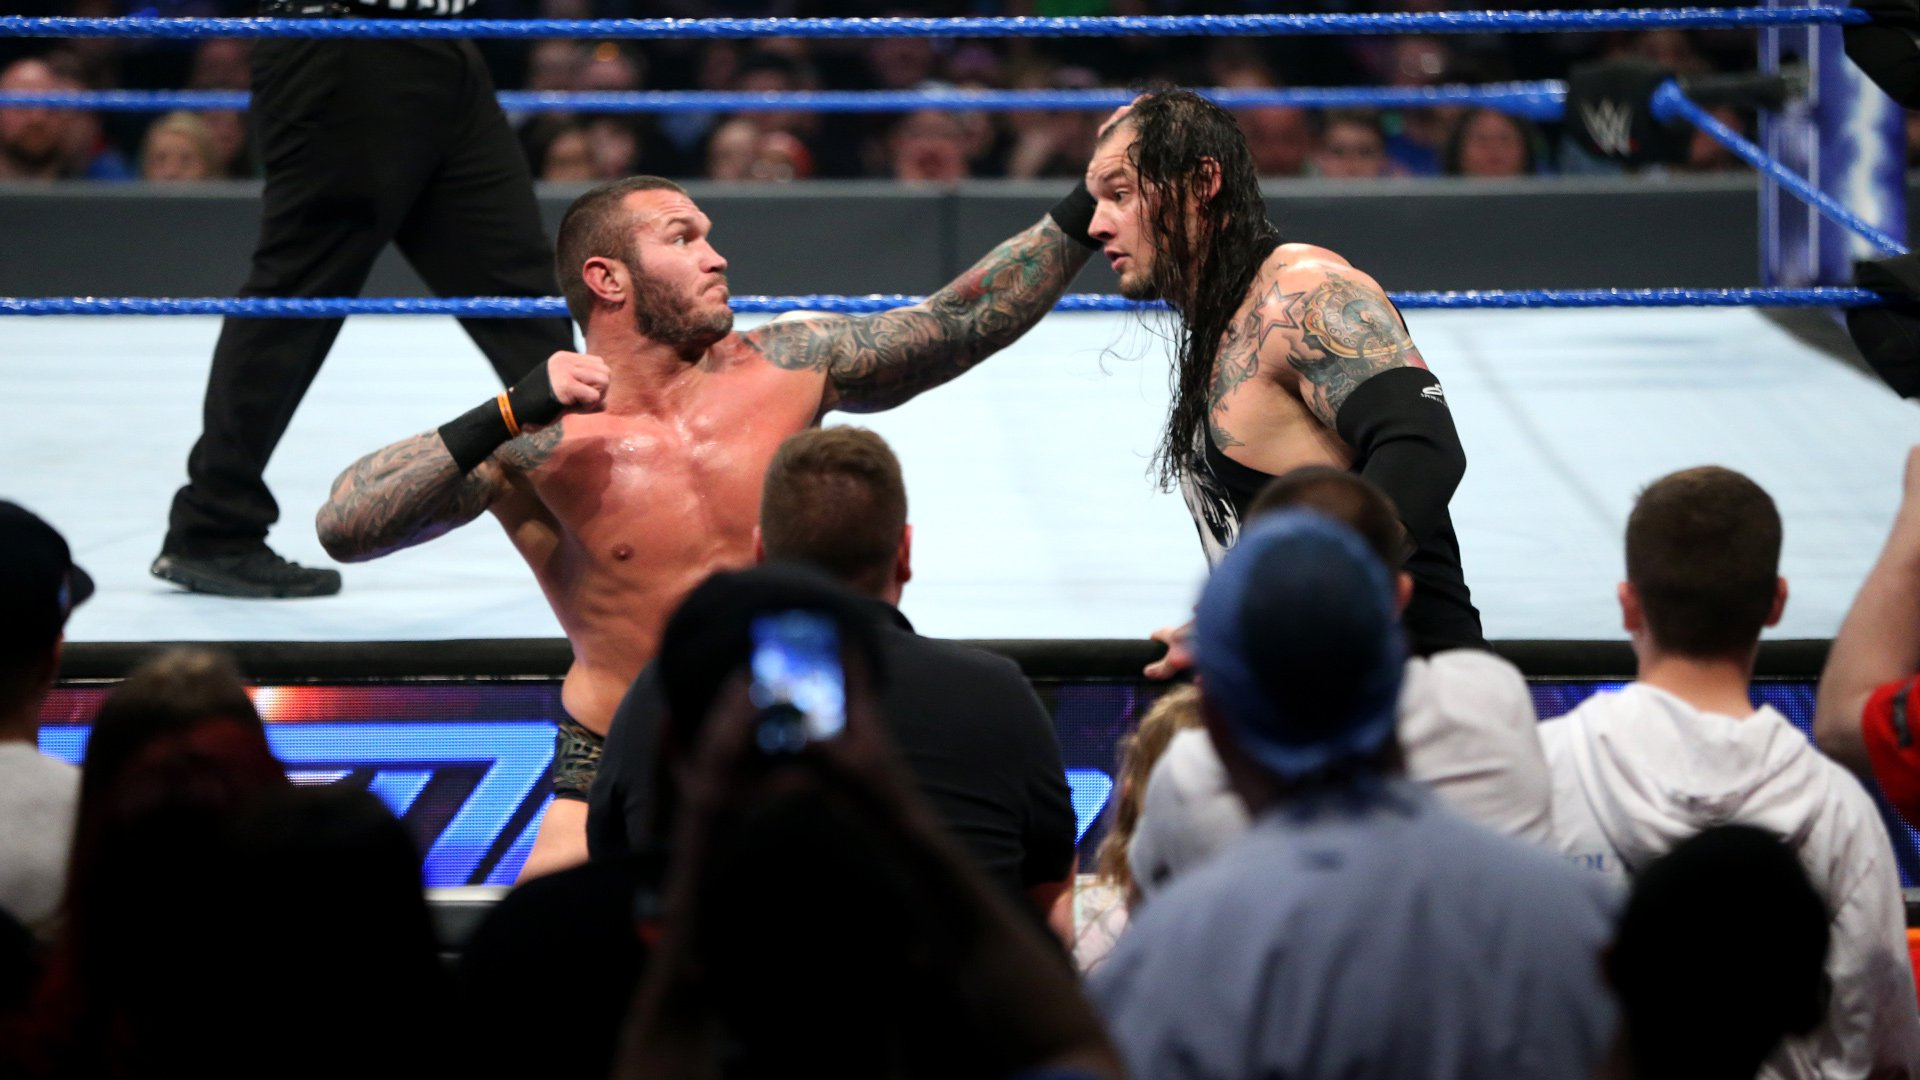 The Apex Predator brawls with Corbin on the outside.